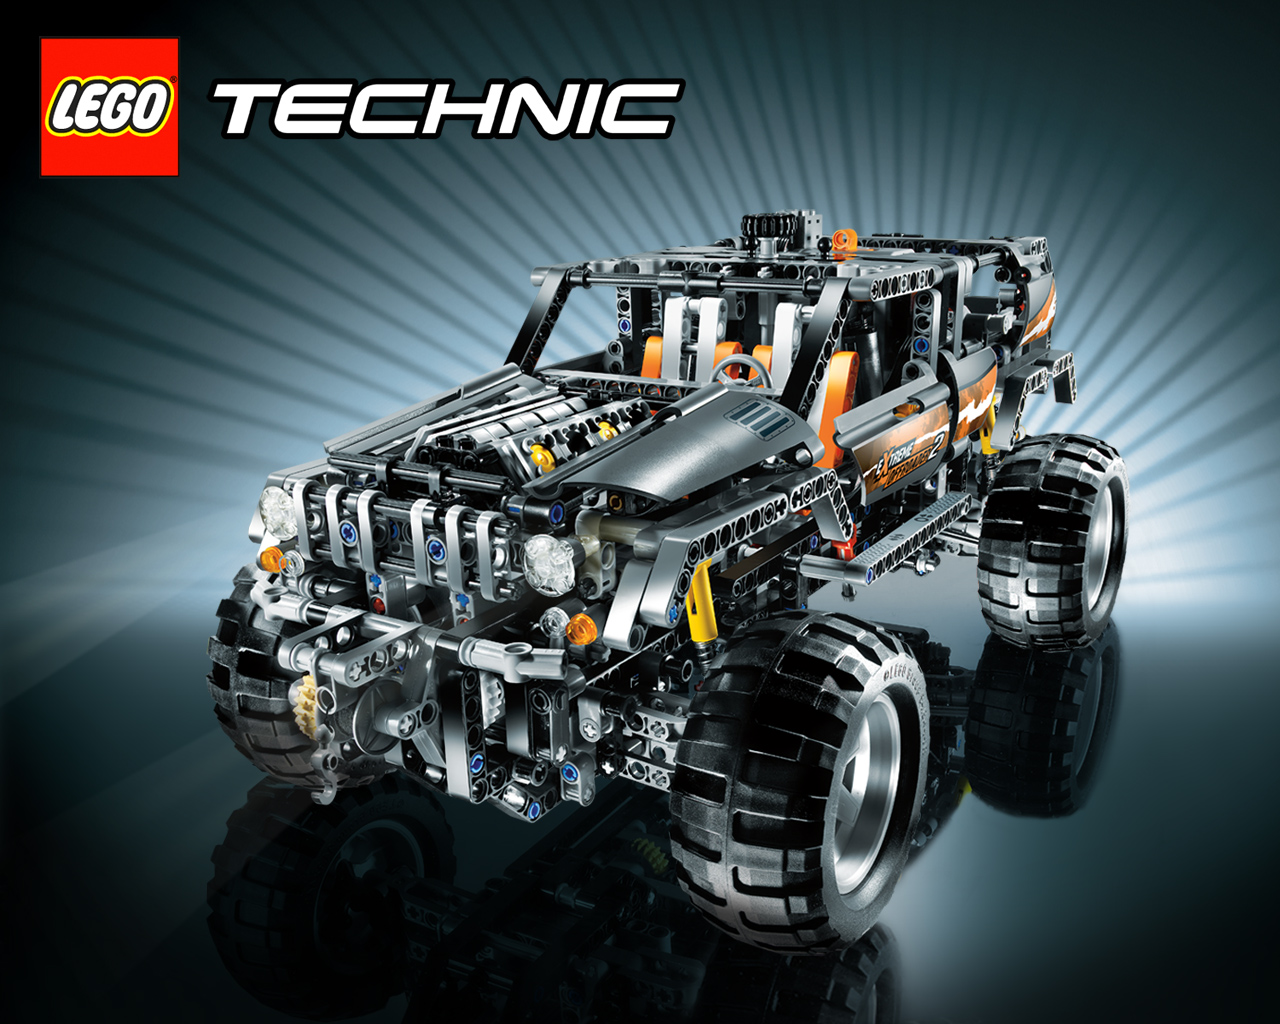 2018 Lego Technic Models >> Lego Technic | Free Desktop Wallpapers for Widescreen, HD and Mobile